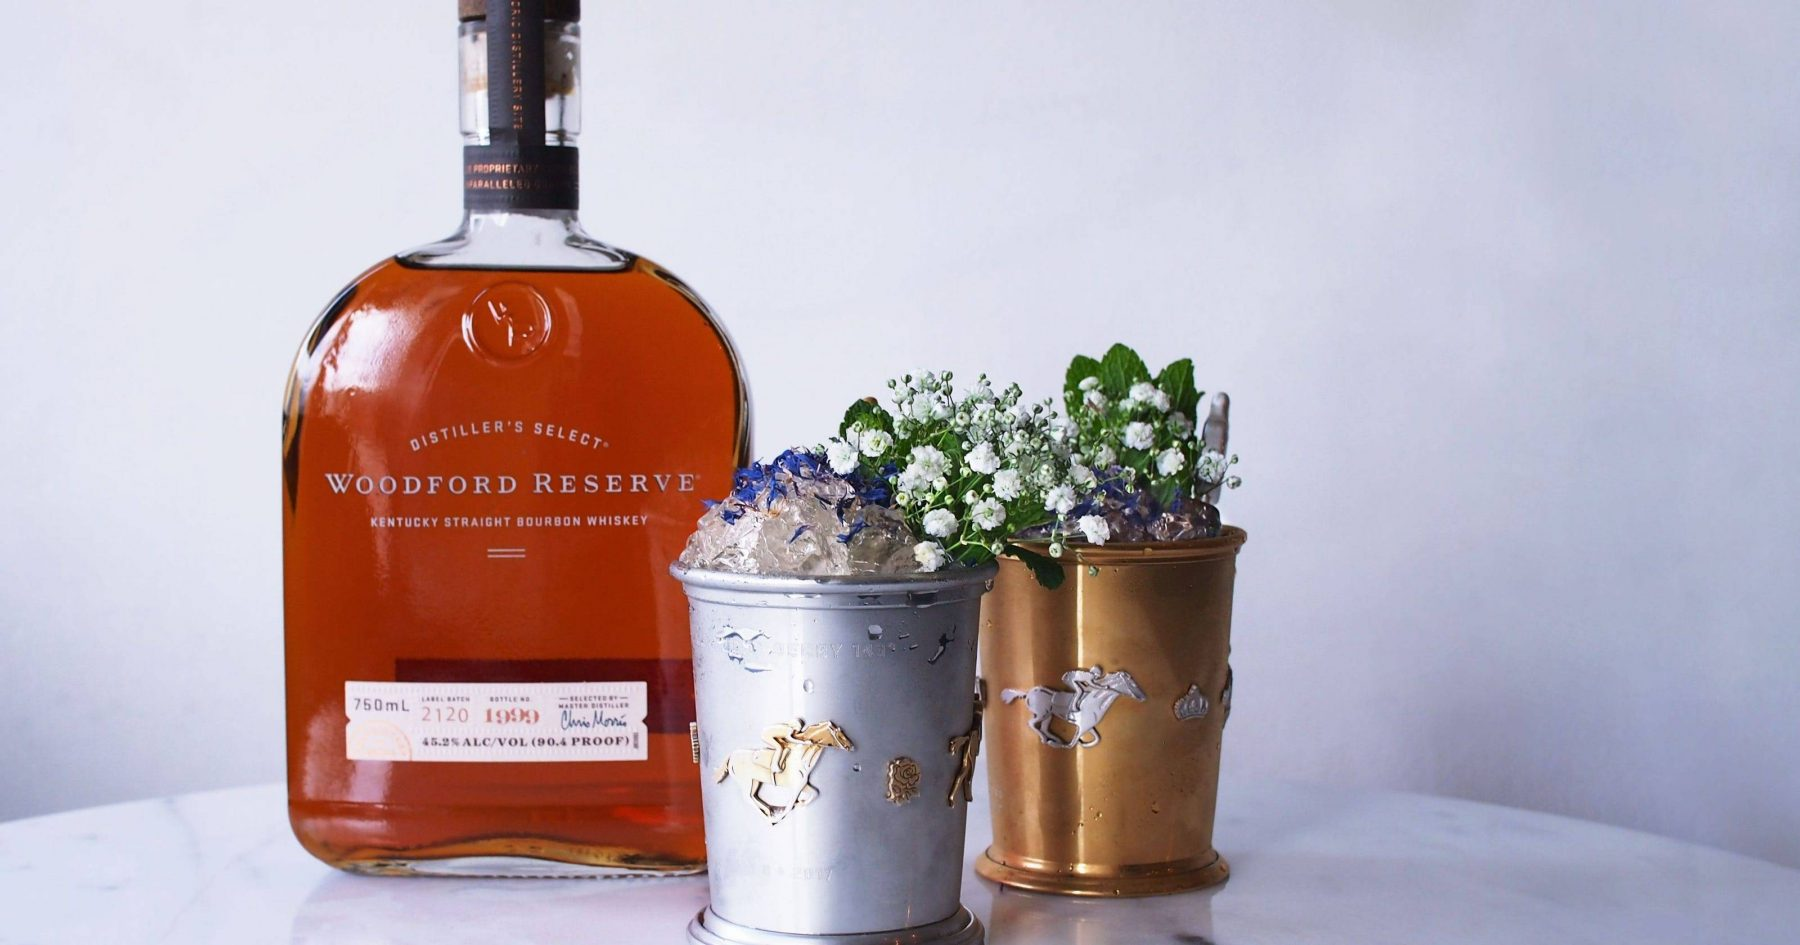 Mint Julep cup in a gold and silver cup with a bottle of Woodford Reserve behind